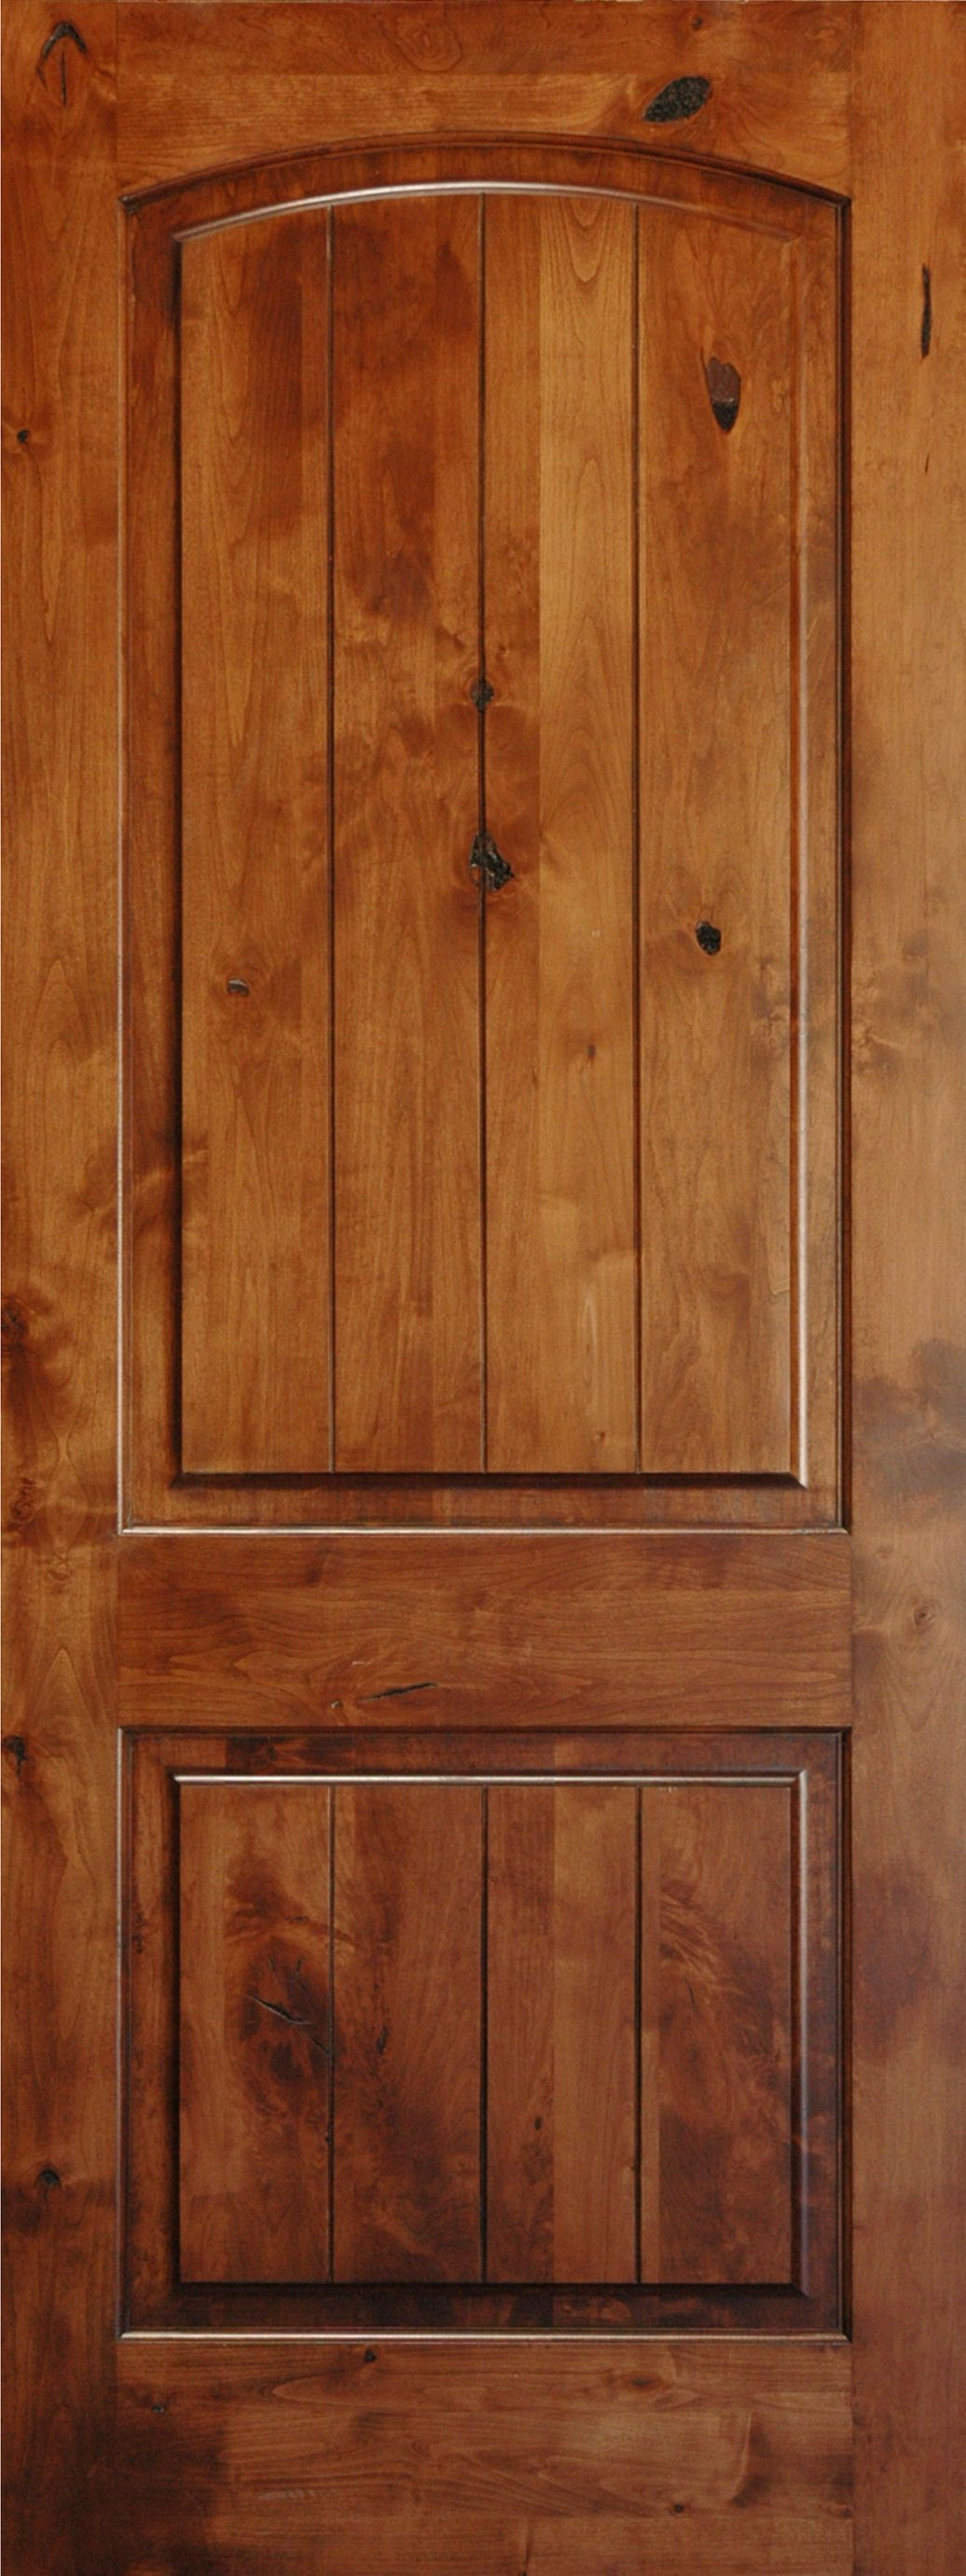 Panel doors pine doors knotty alder and arch Wooden interior